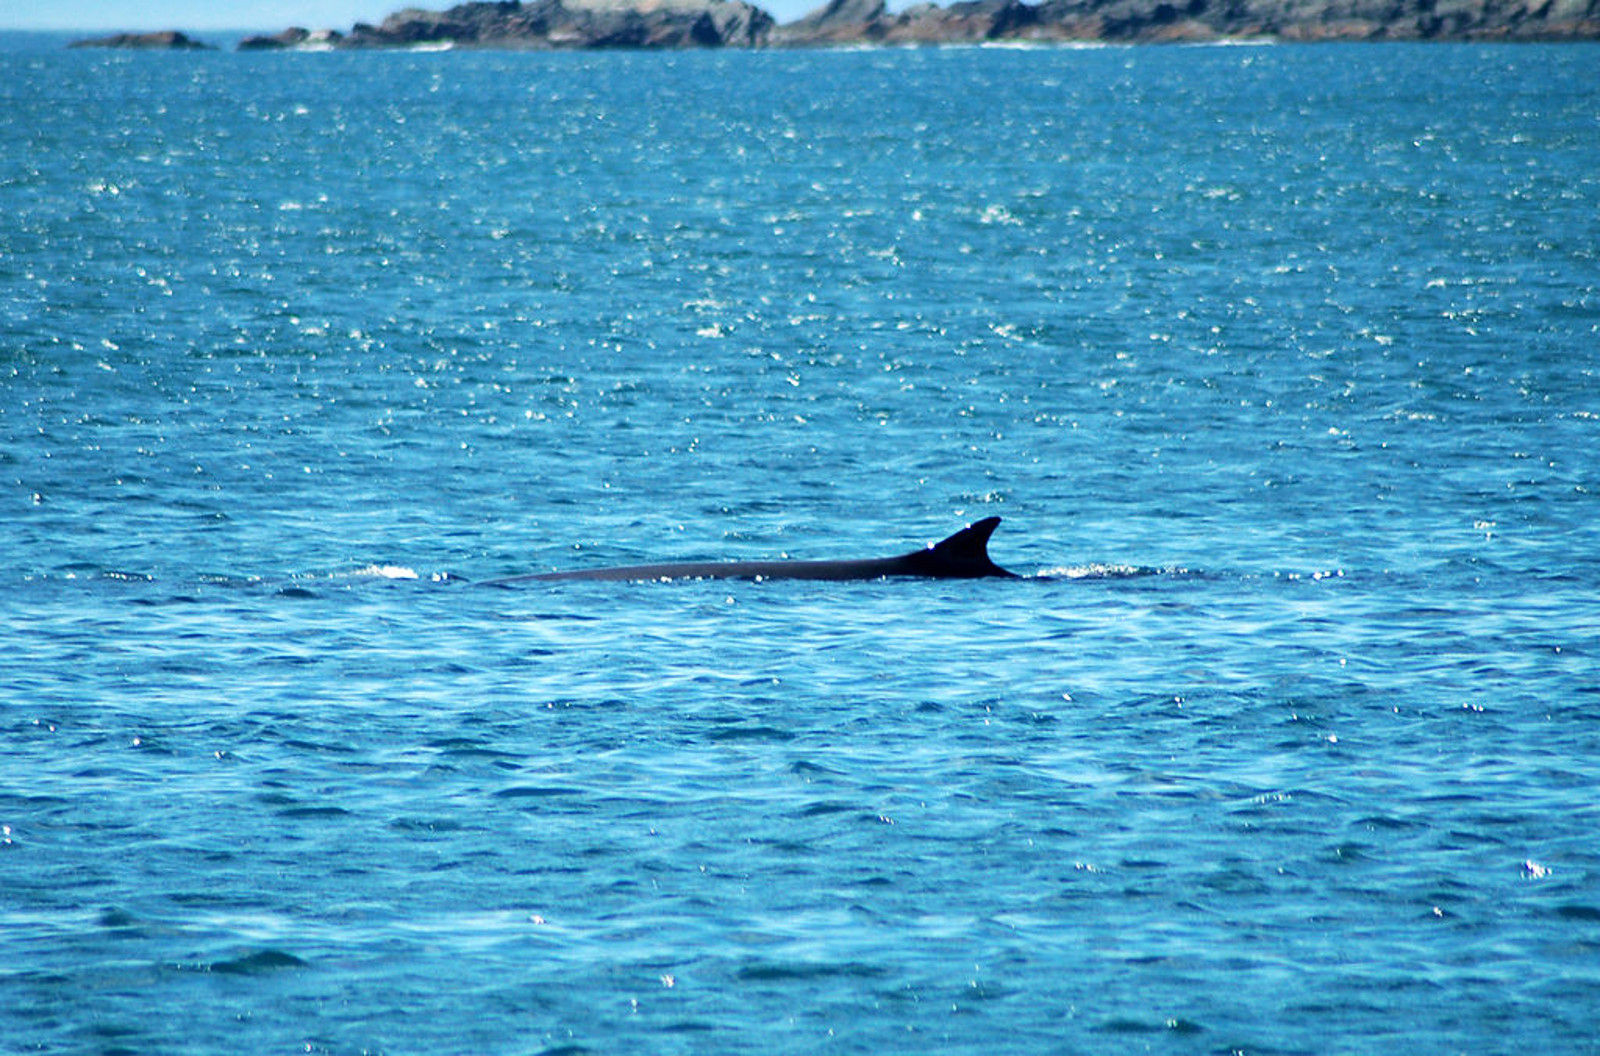 Fin Whales and Commercial Whaling